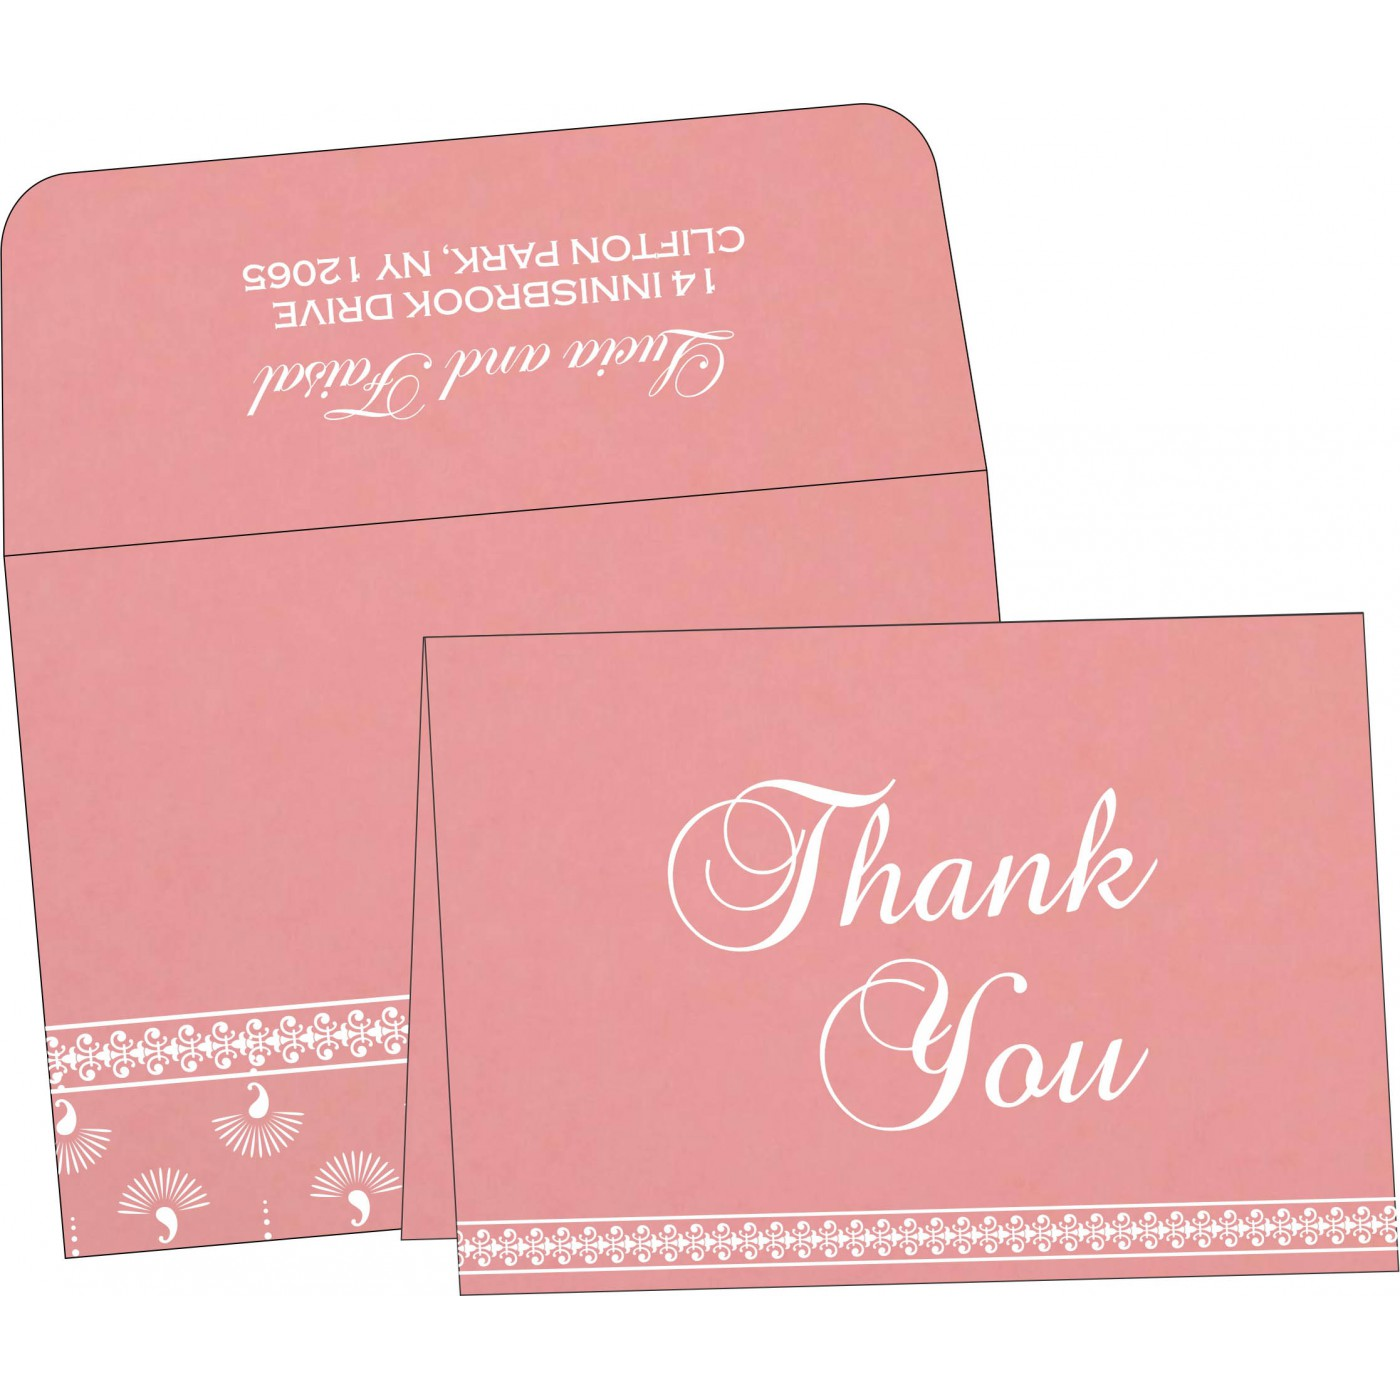 Thank You Cards - TYC-8247A